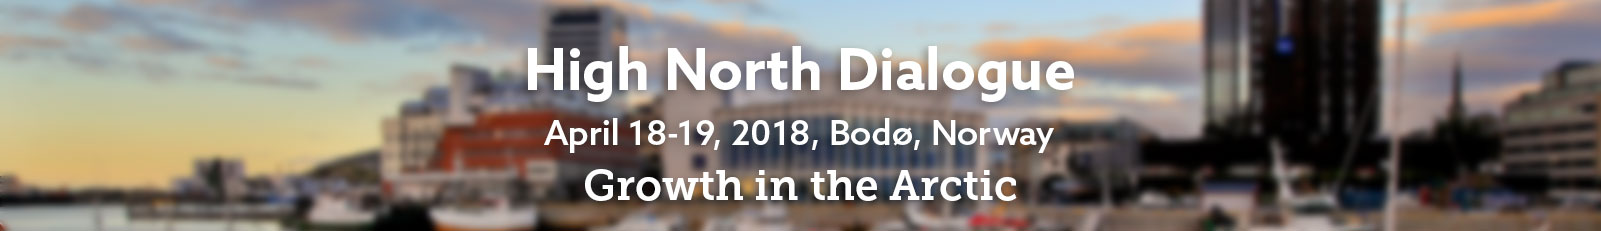 Promo image for High North Dialogue 2018